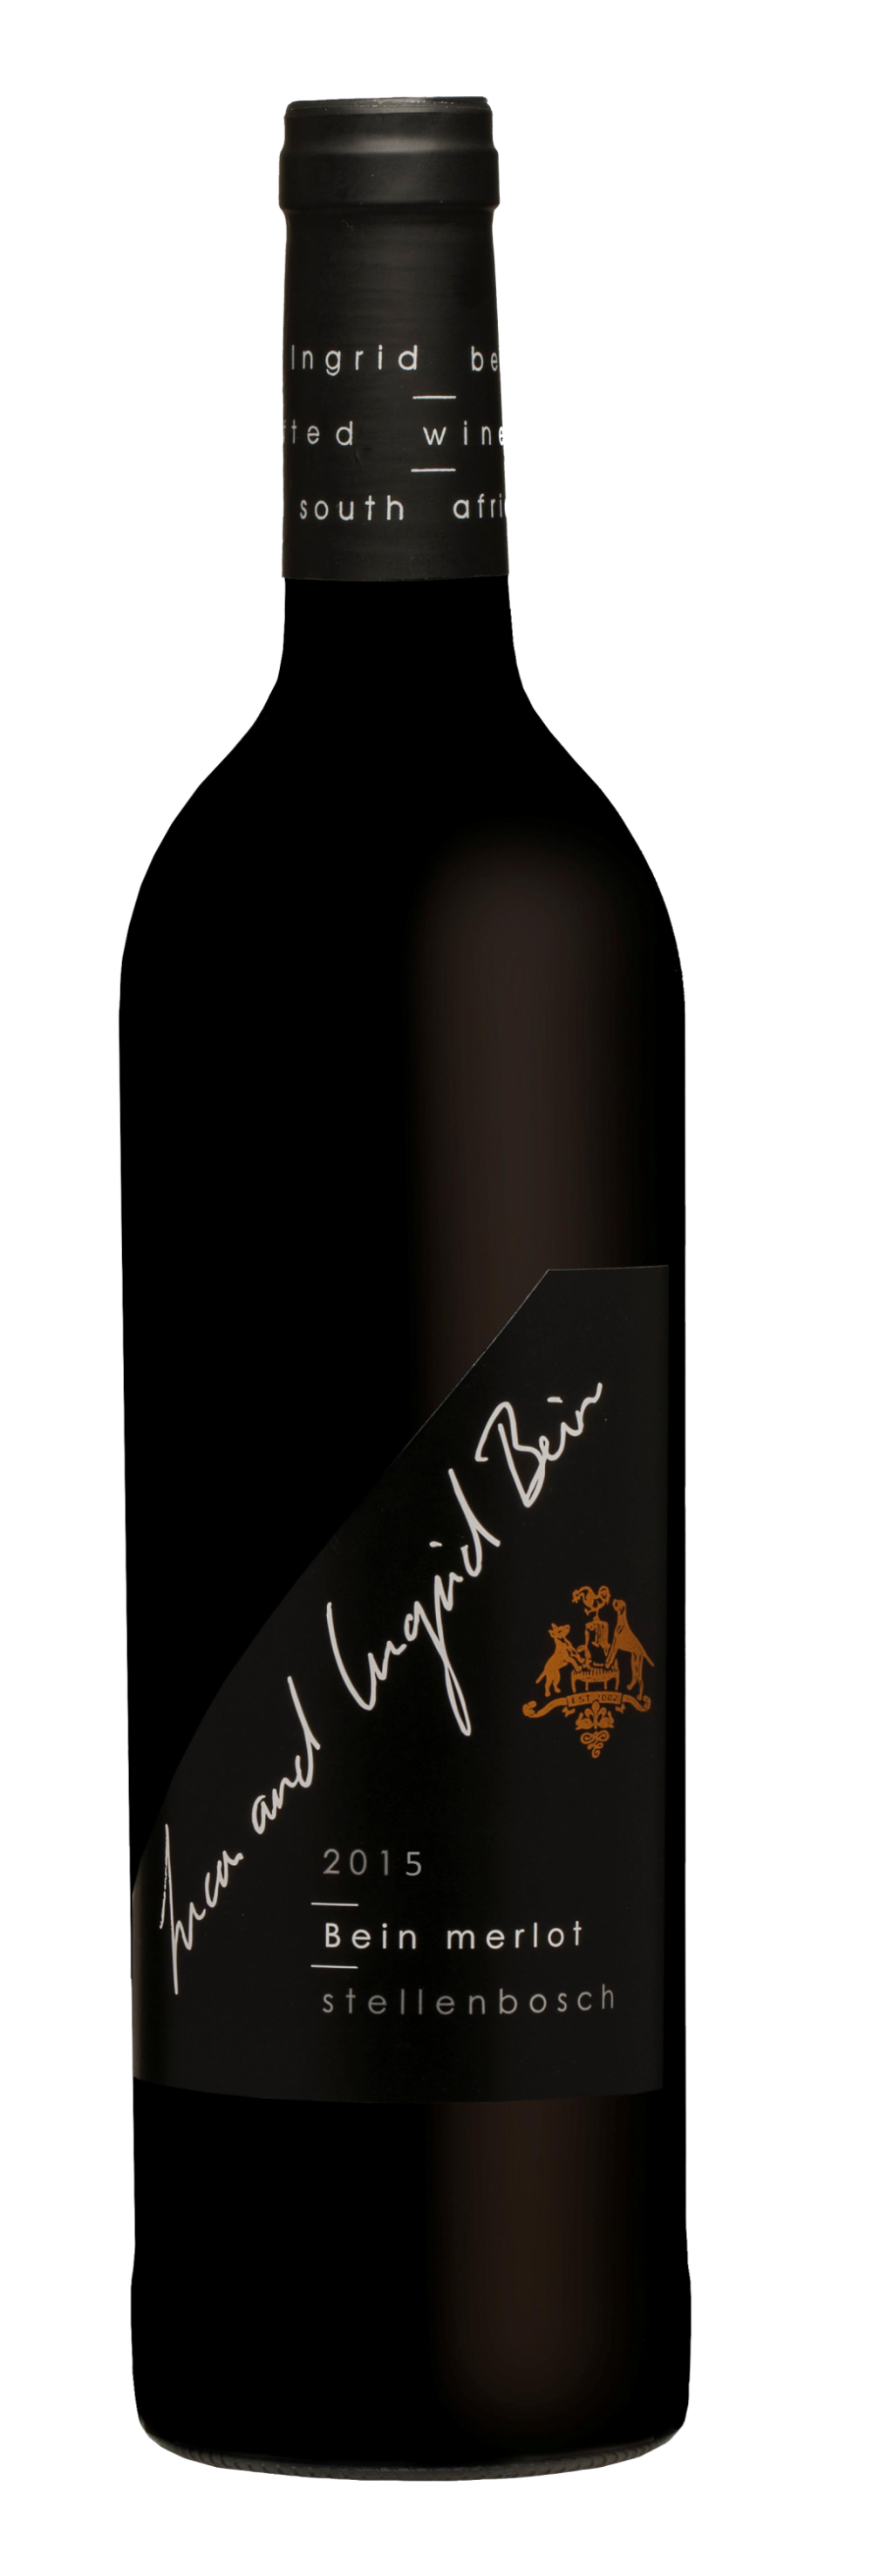 files/images/wines/South Africa/ingrid-and-luca-bein-stellenbosch/bein_merlot 2015_02.png